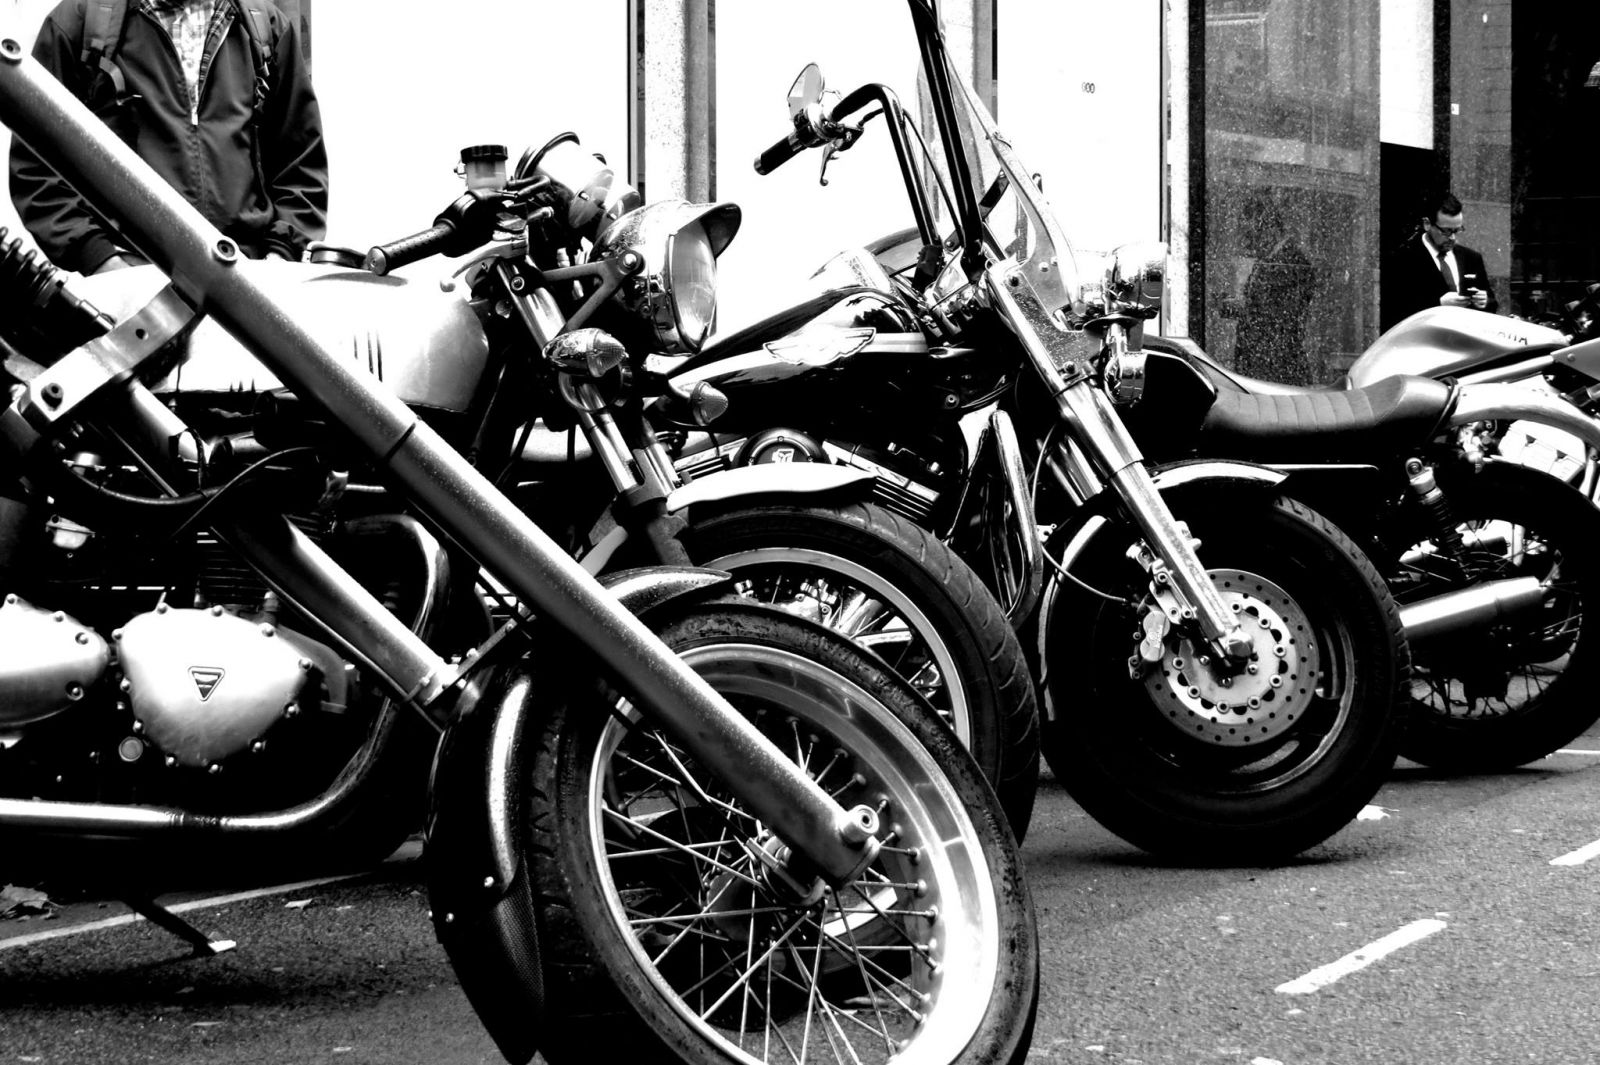 Bristol Bike Show | Saturday 17 August 2019